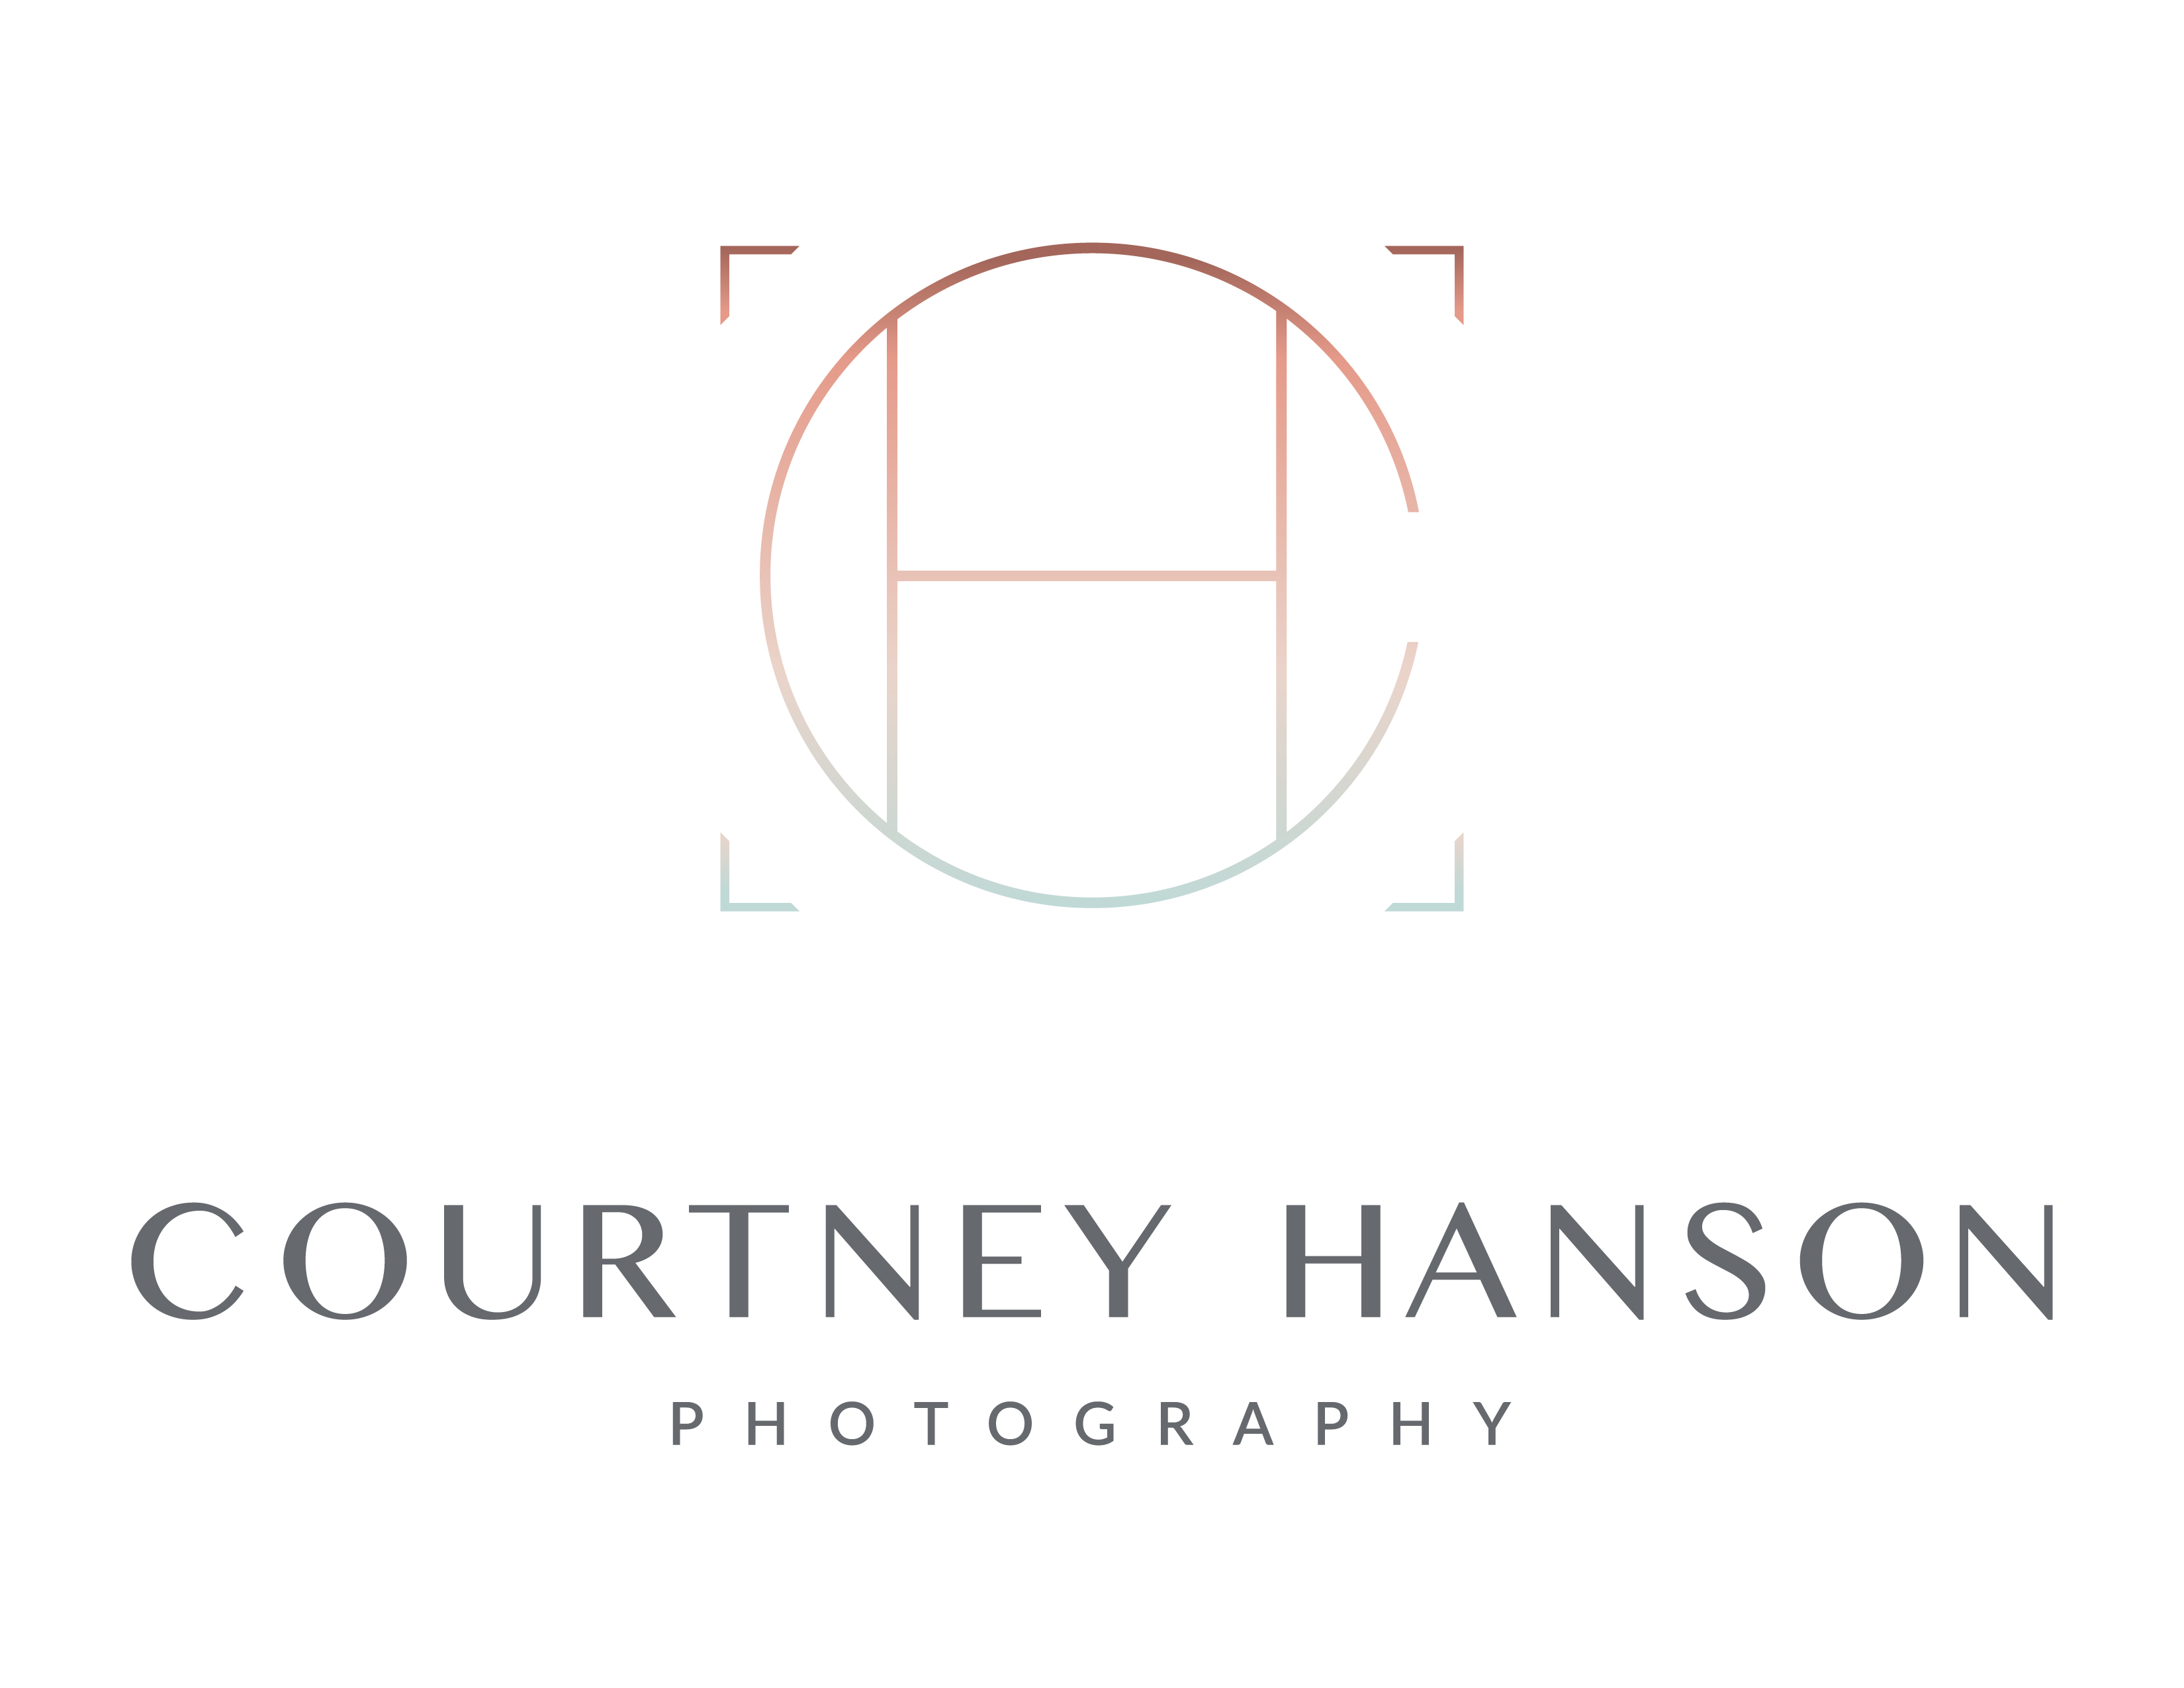 Courtney Hanson Photography